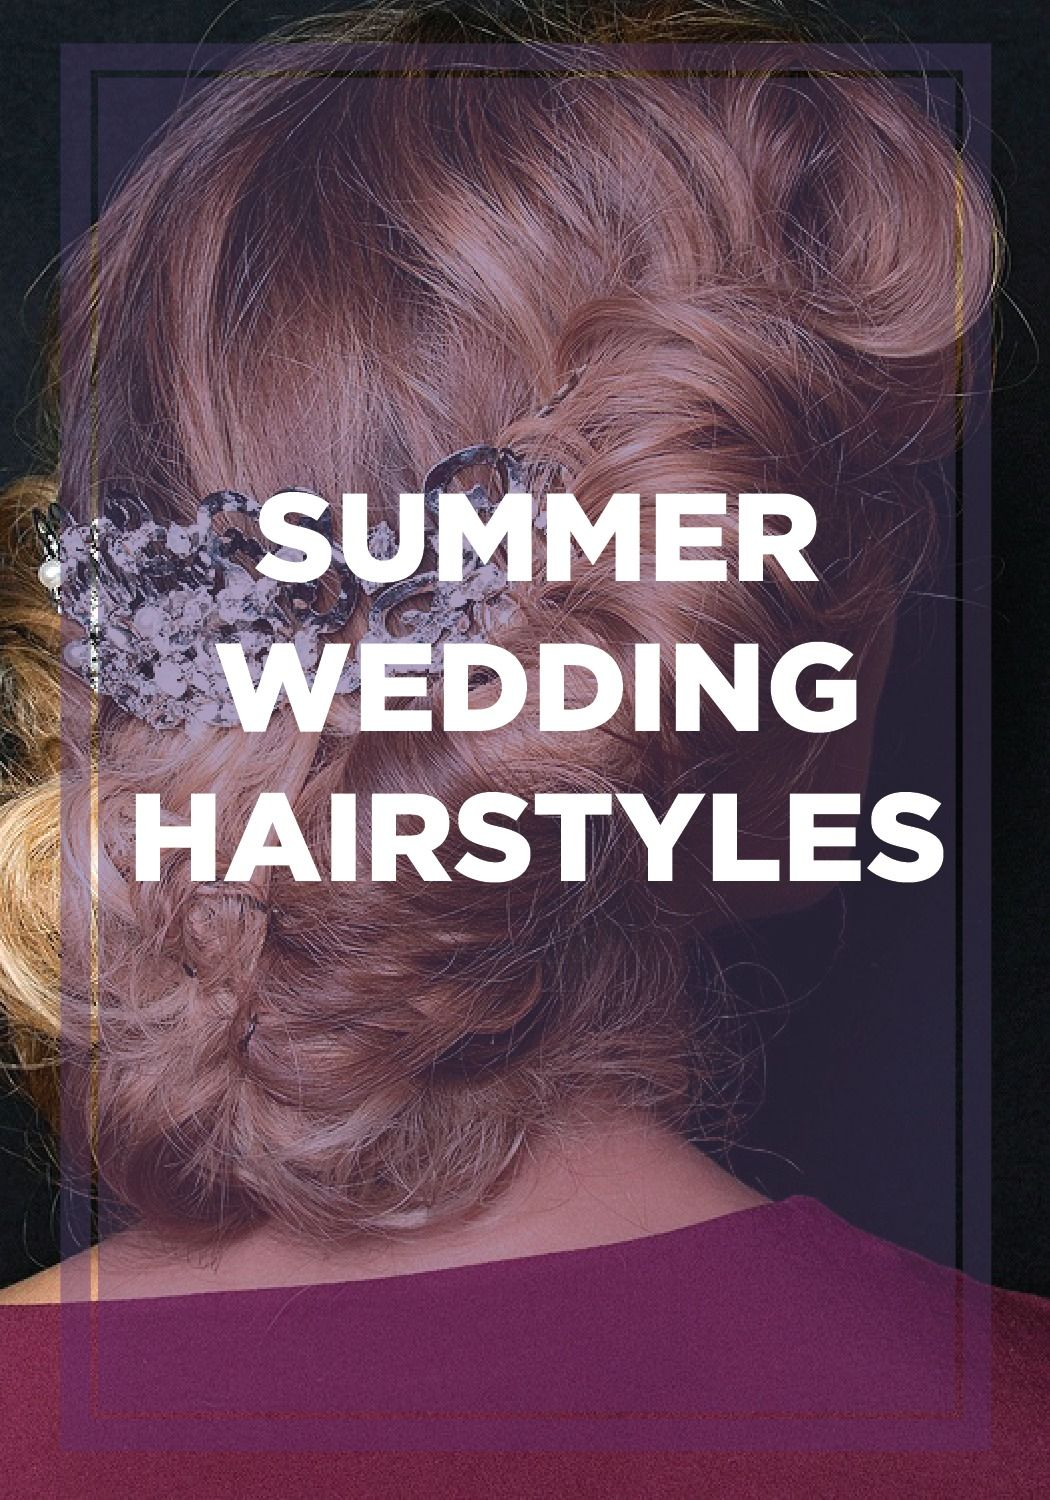 5 Summer Wedding Hairstyles to Rip From theRunway